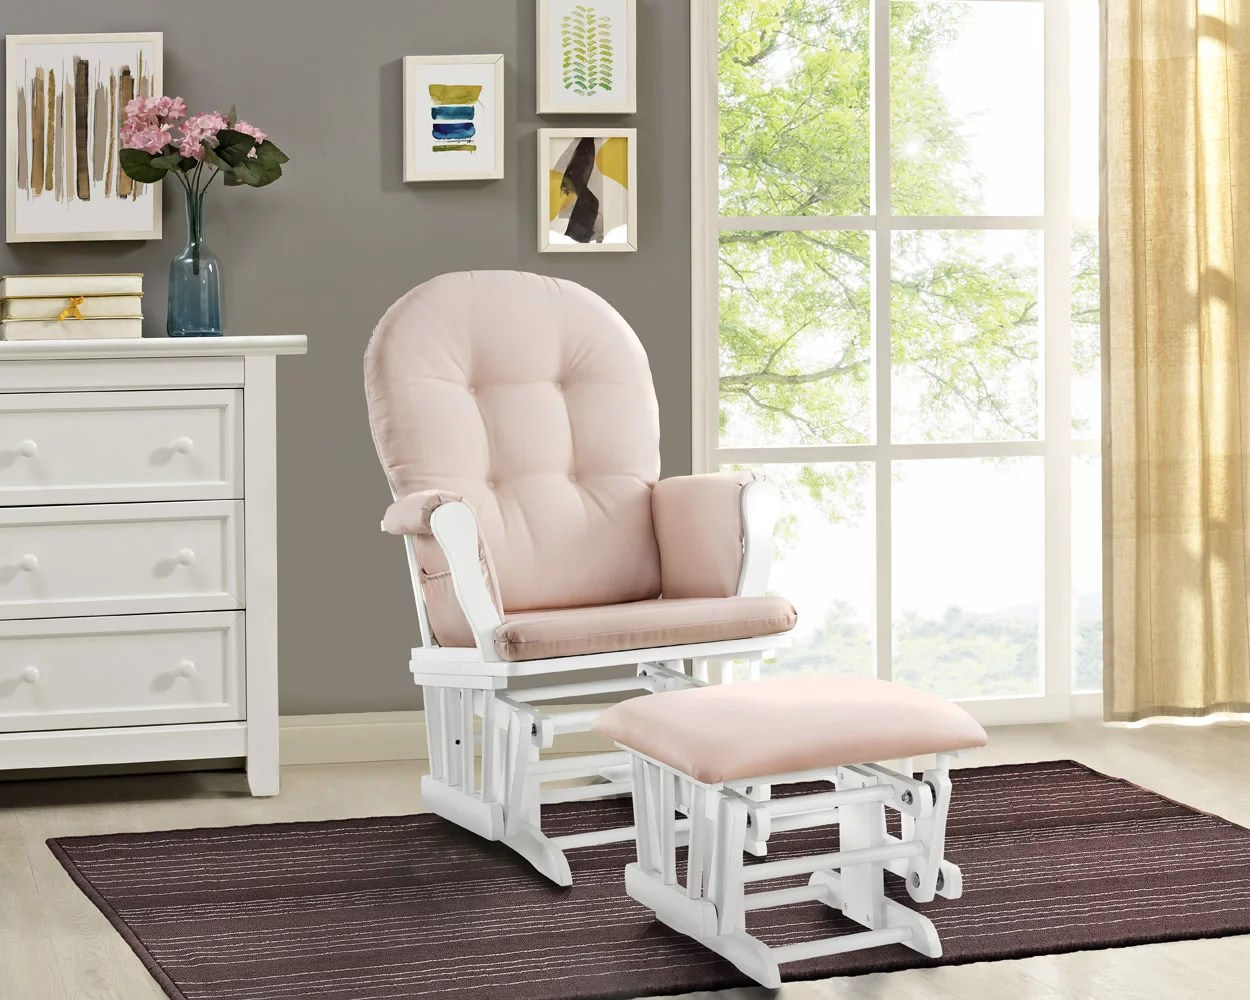 Baby Nursery Chairs Details About Nursing Chair Glider Rocker Ottoman Baby Furniture Rocking Seat Breast Feeding